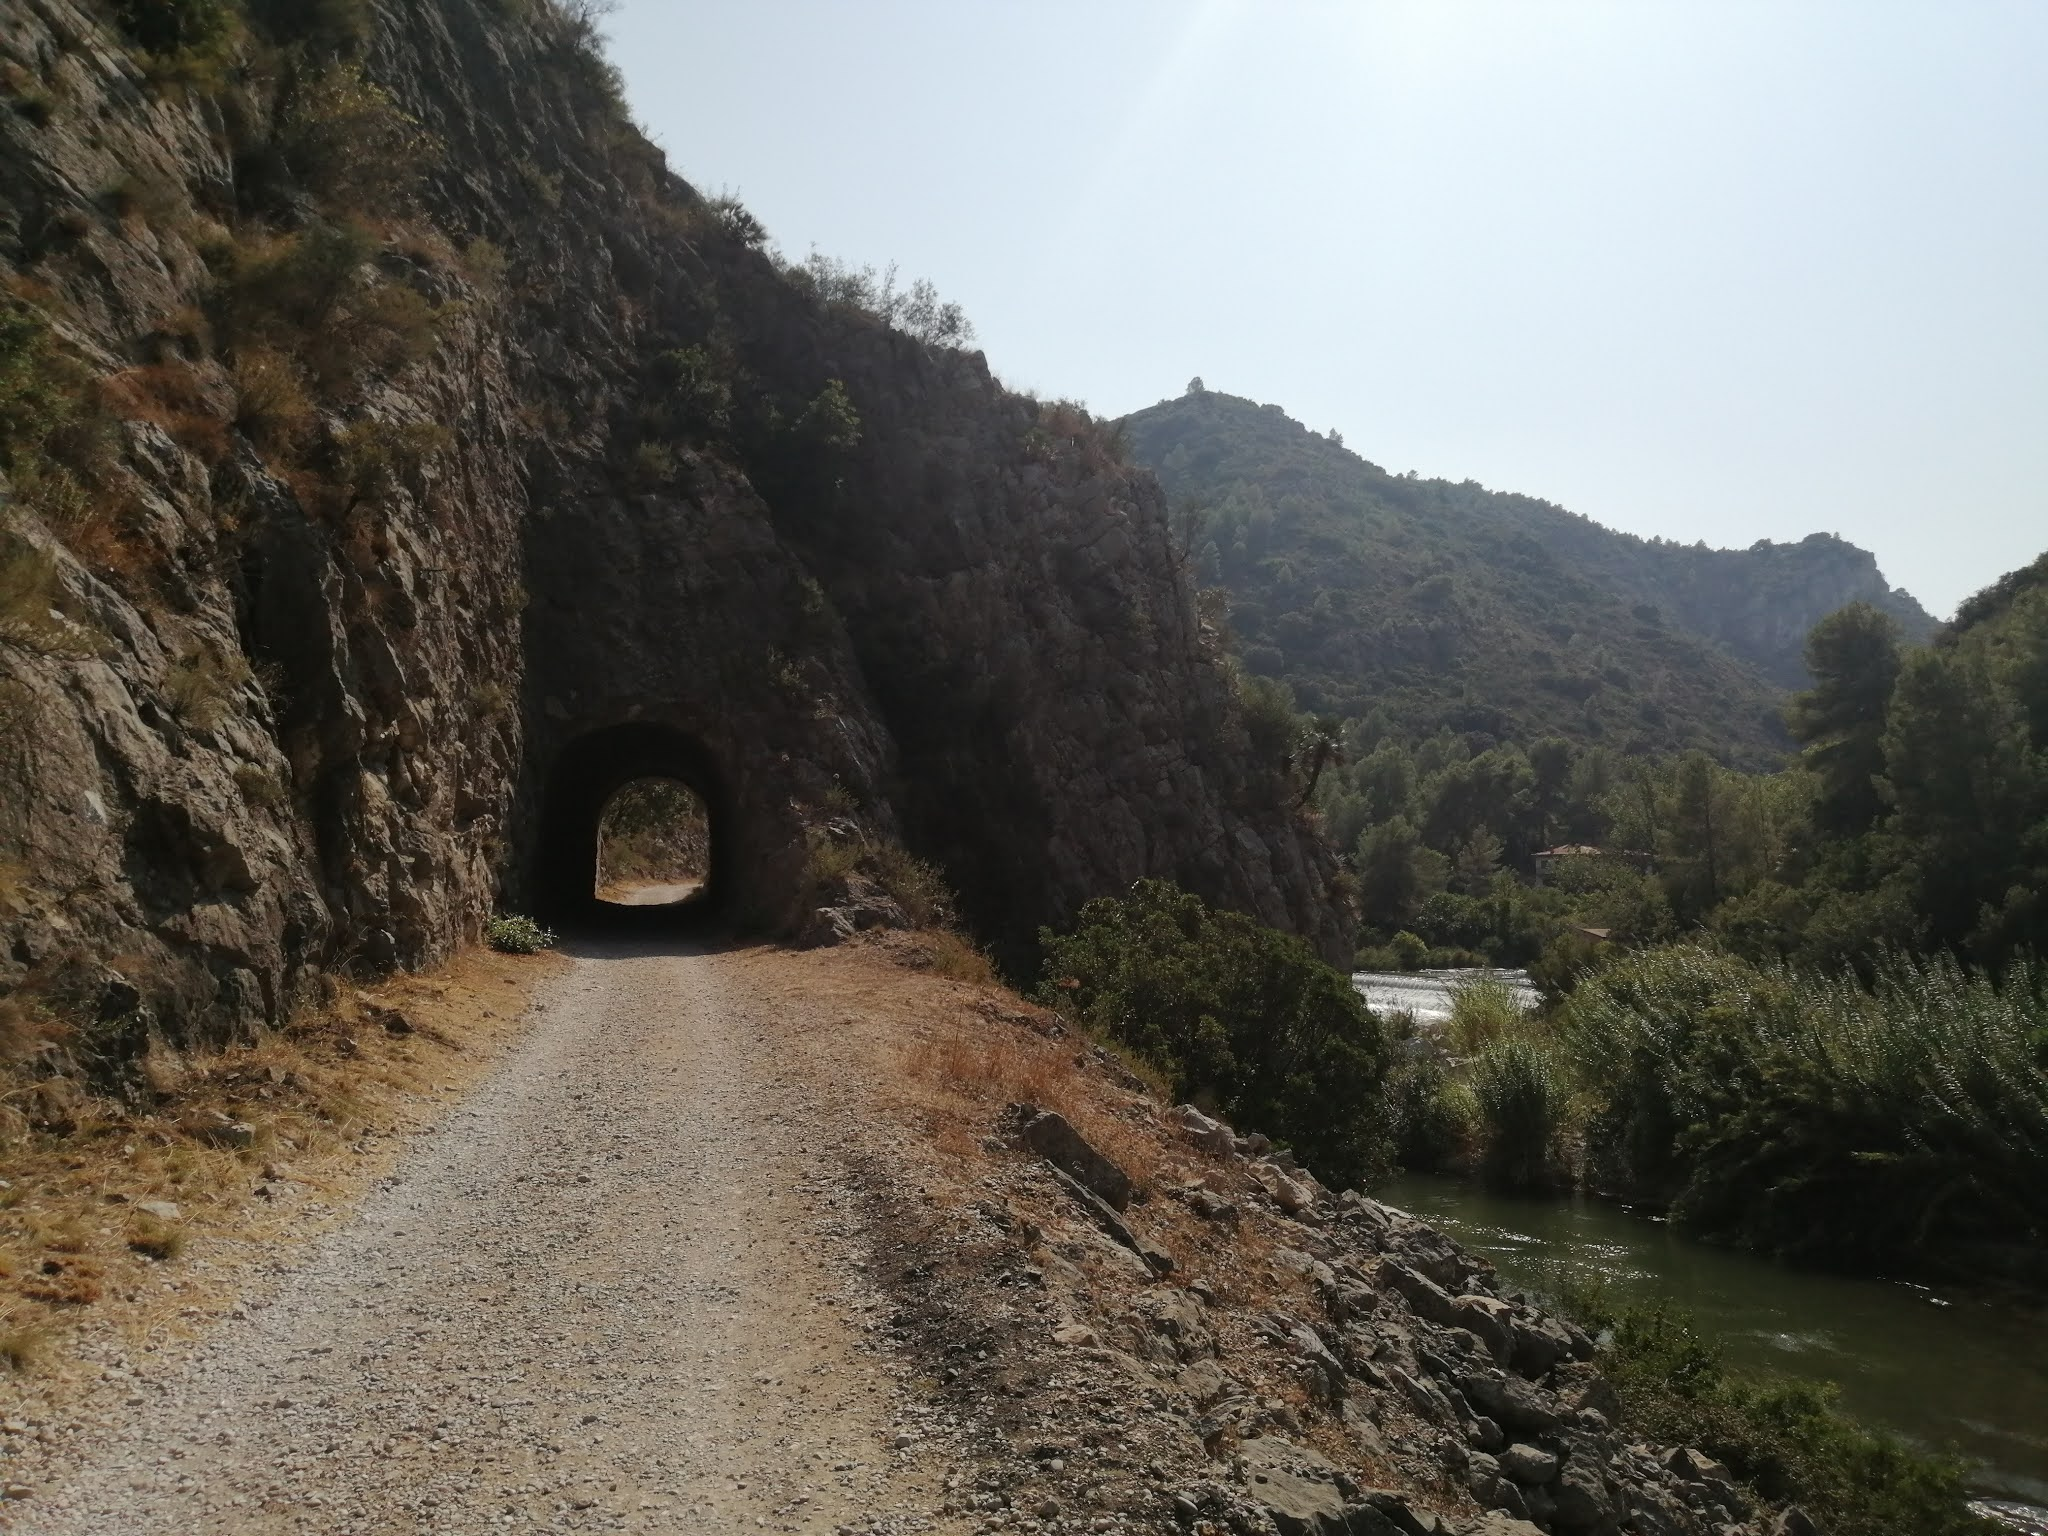 Tunnel above the Assut de Morú diversion dam on the River Serpis, Valencia, Spain